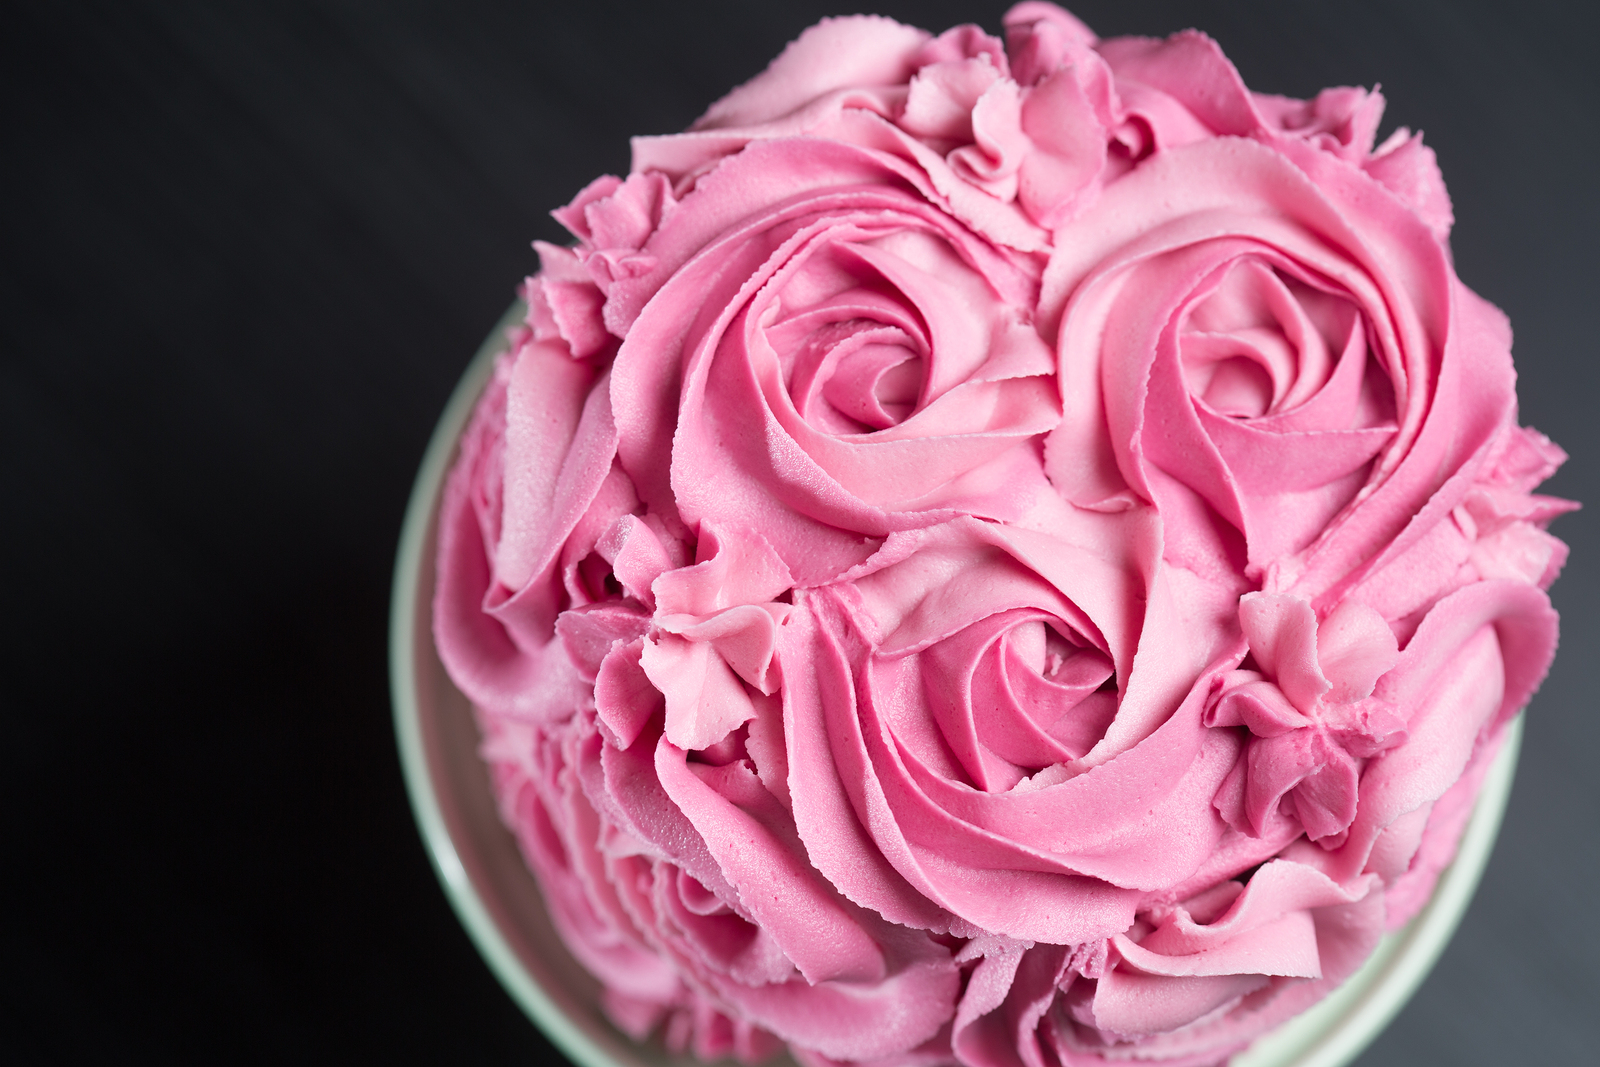 bigstock-Cake-Decorated-With-Pink-Roses-94078469.jpg